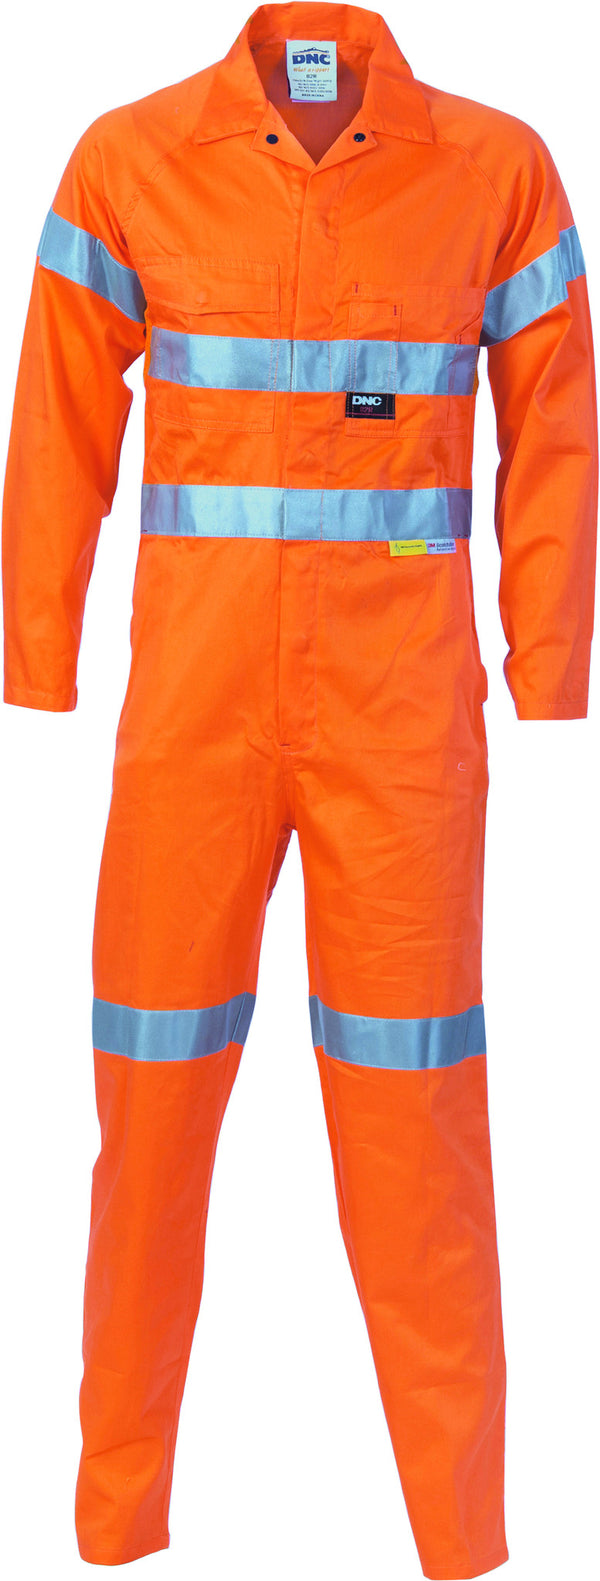 HiVis Cool-Breeze Orange Leightweight Cotton Coverall With 3M Reflective Tape